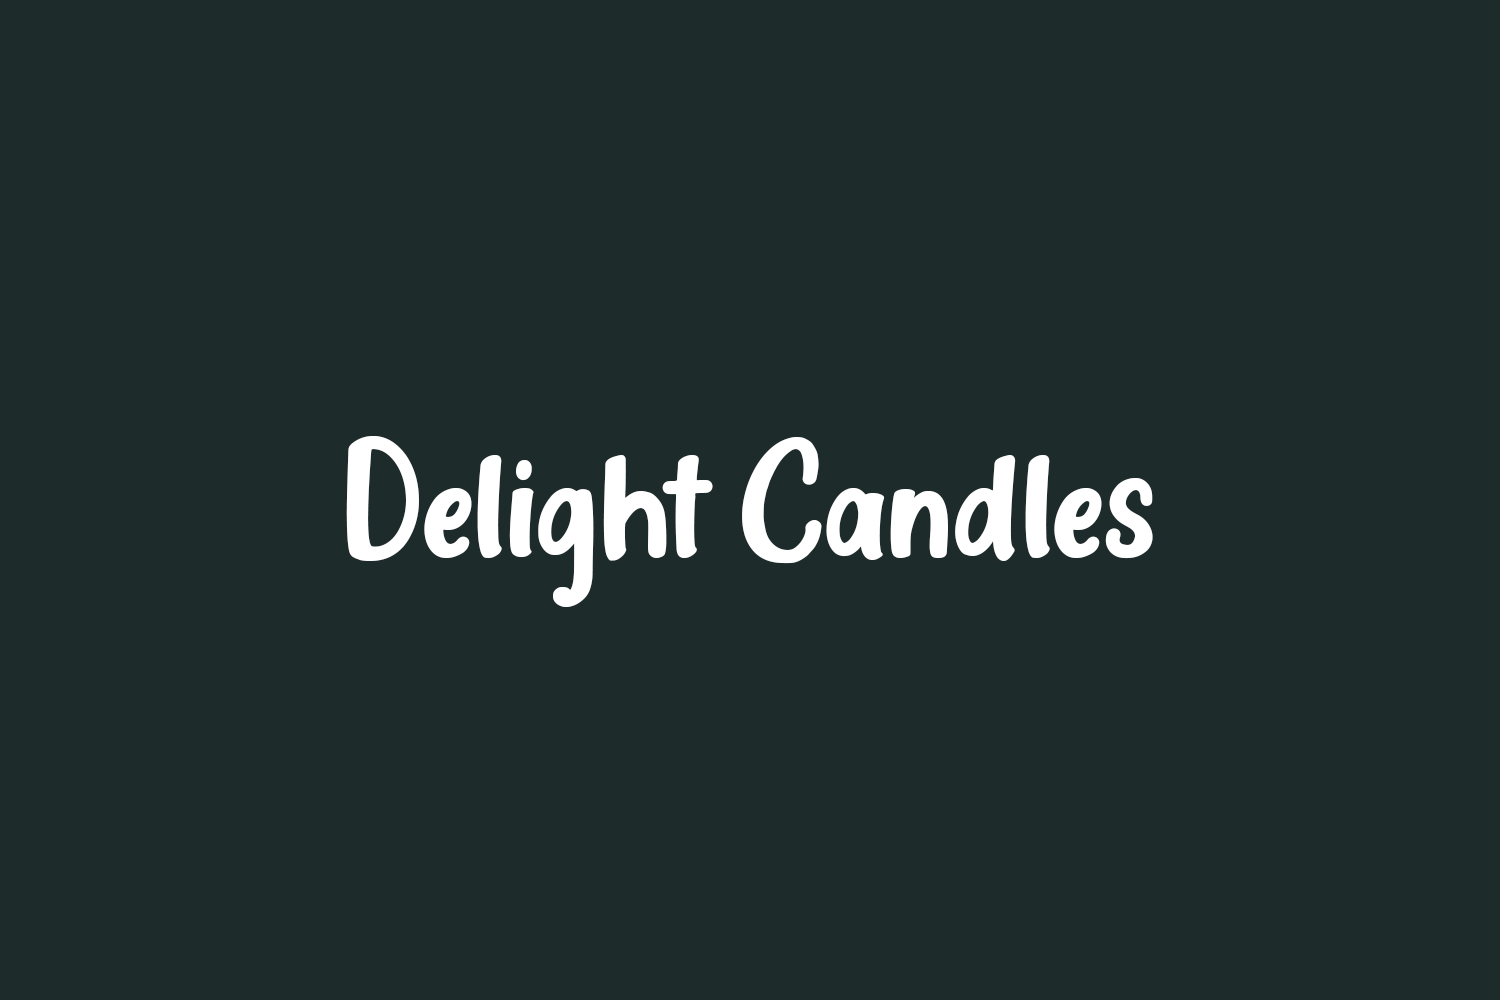 Delight Candles Free Font